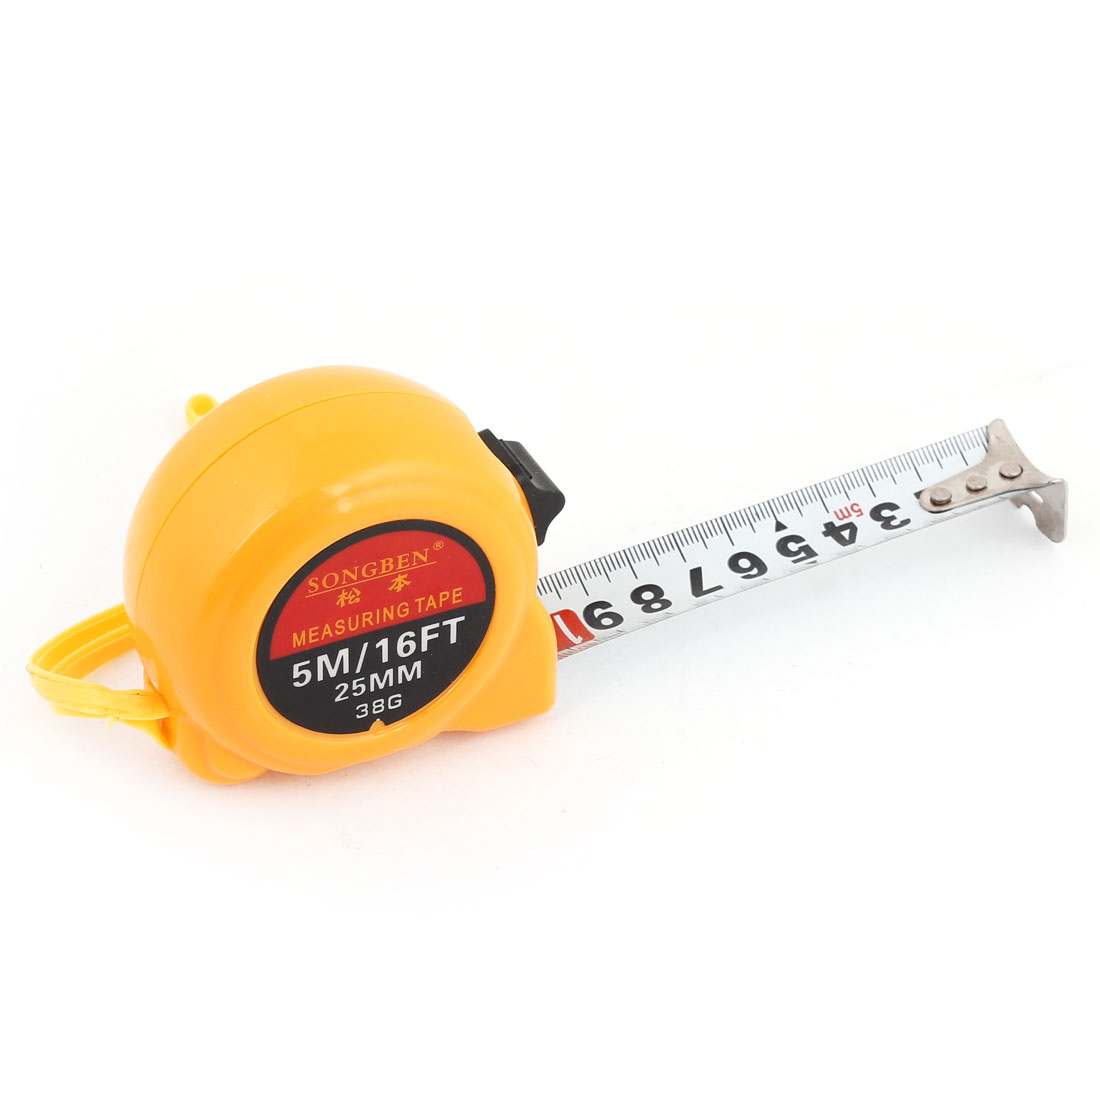 Orange-Shell-Ruler-Tape-Architect-Measuring-Tool-5-Meters-16Ft